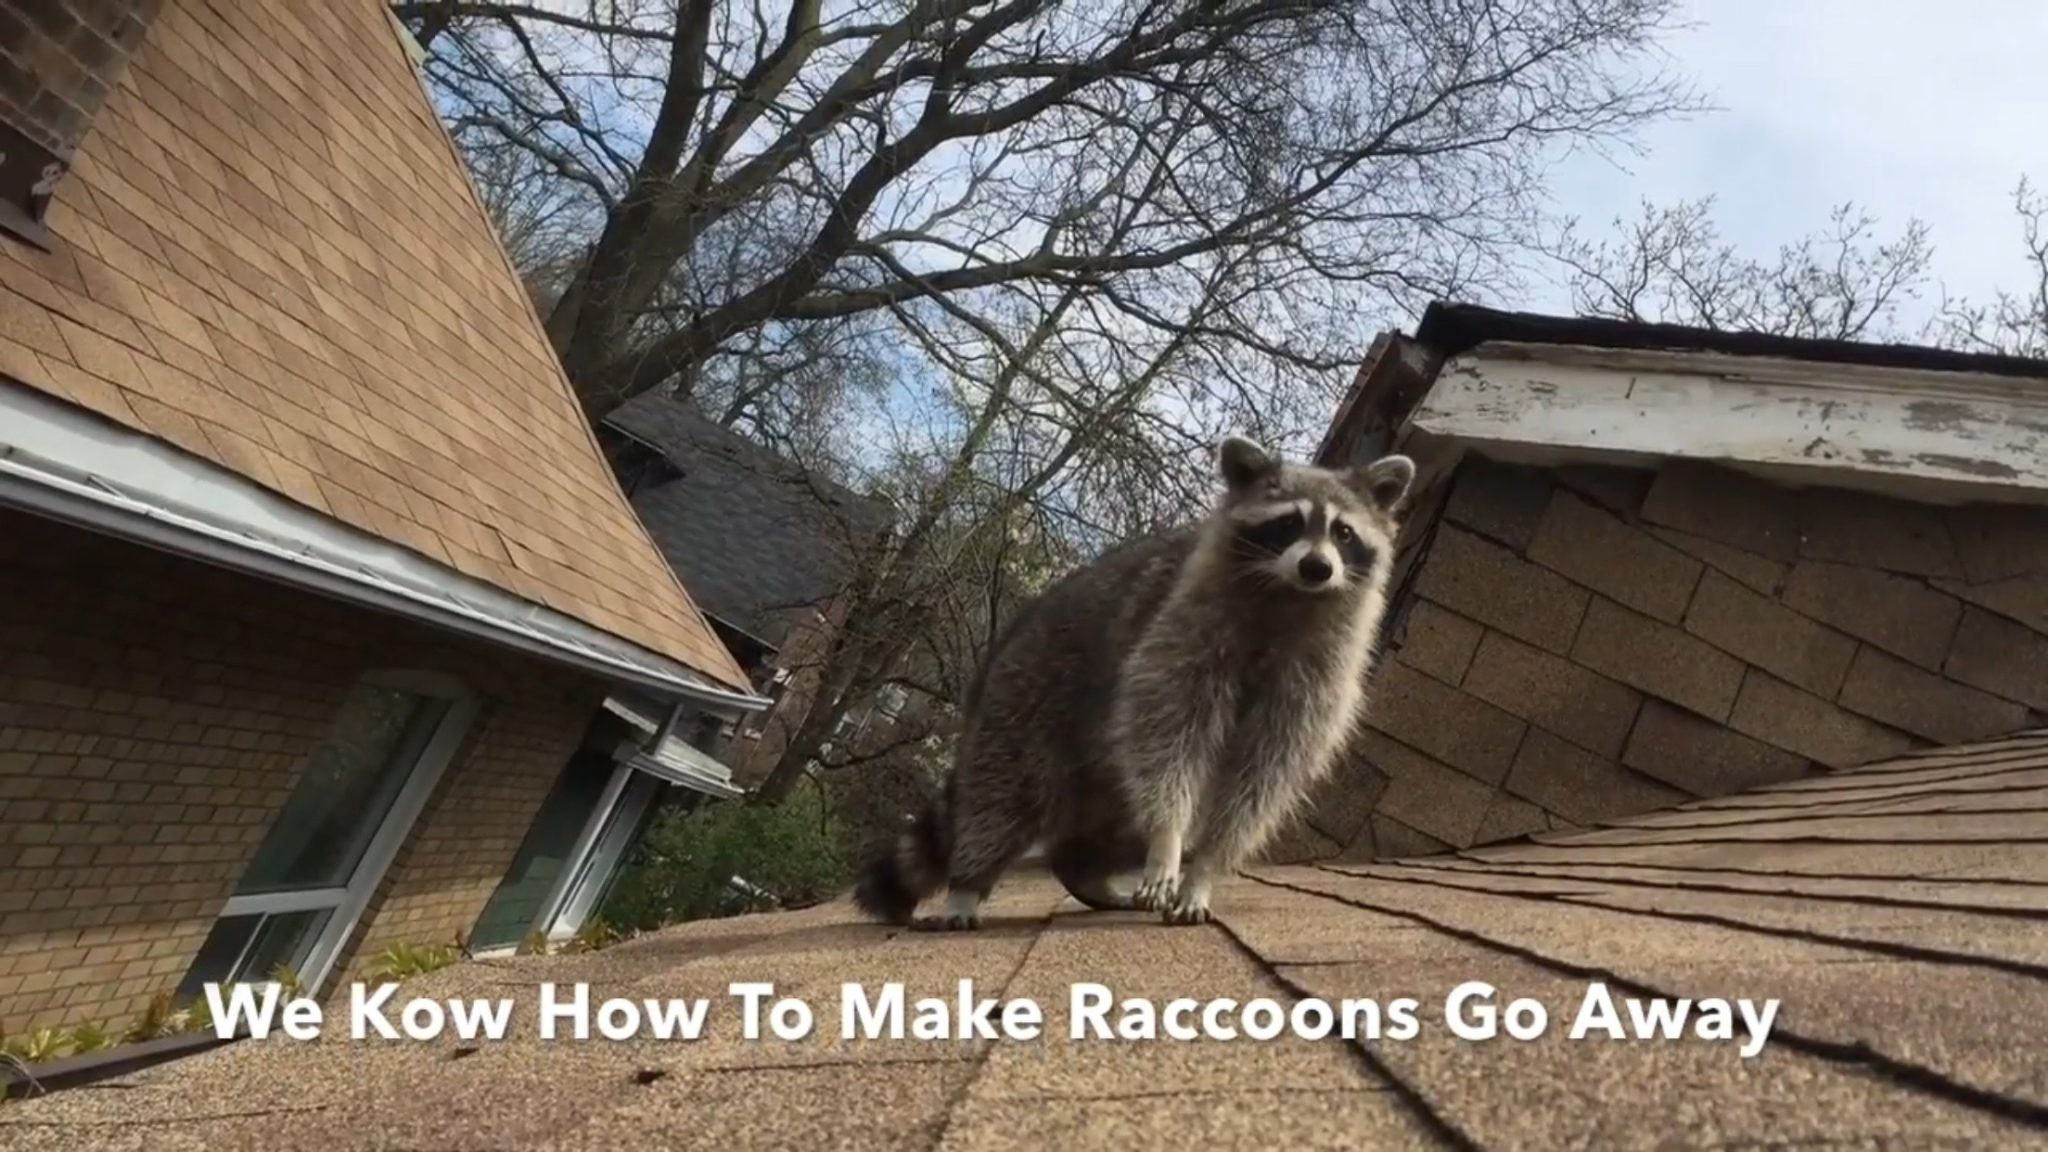 Best Raccoon Removal, Best Squirrel, Top Rated & Best Wildlife Removal Service in Toronto